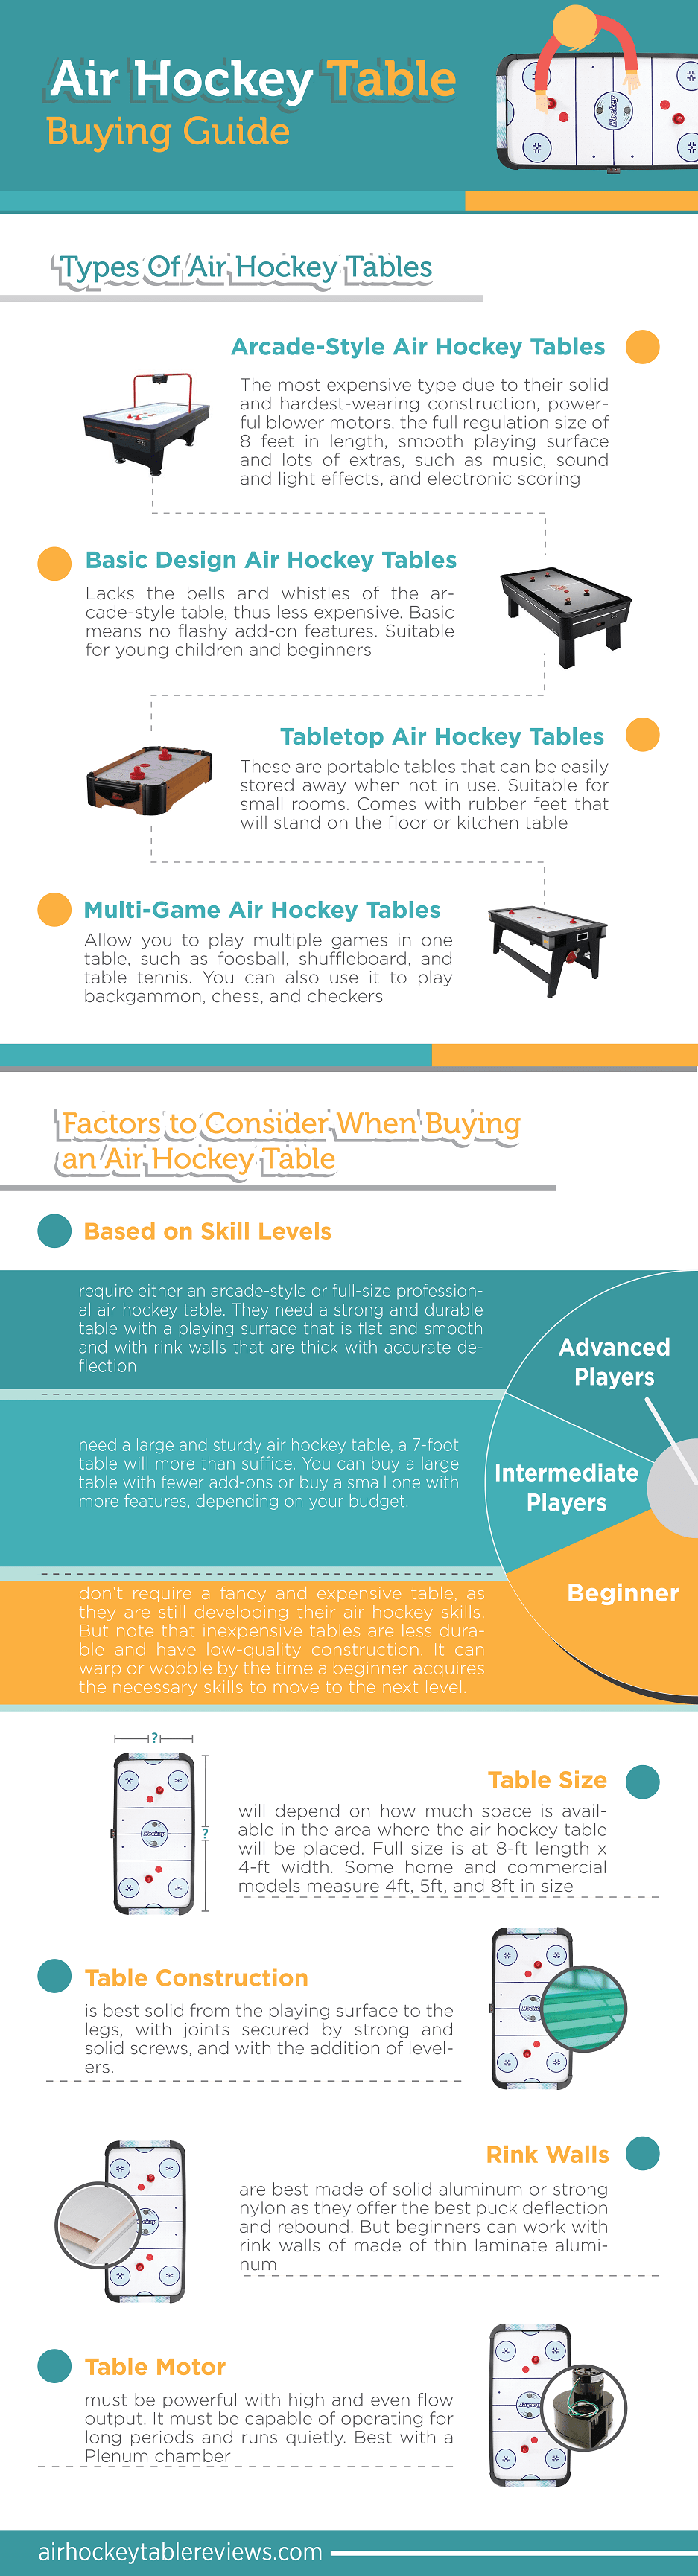 air-hockey-buyers-infographic